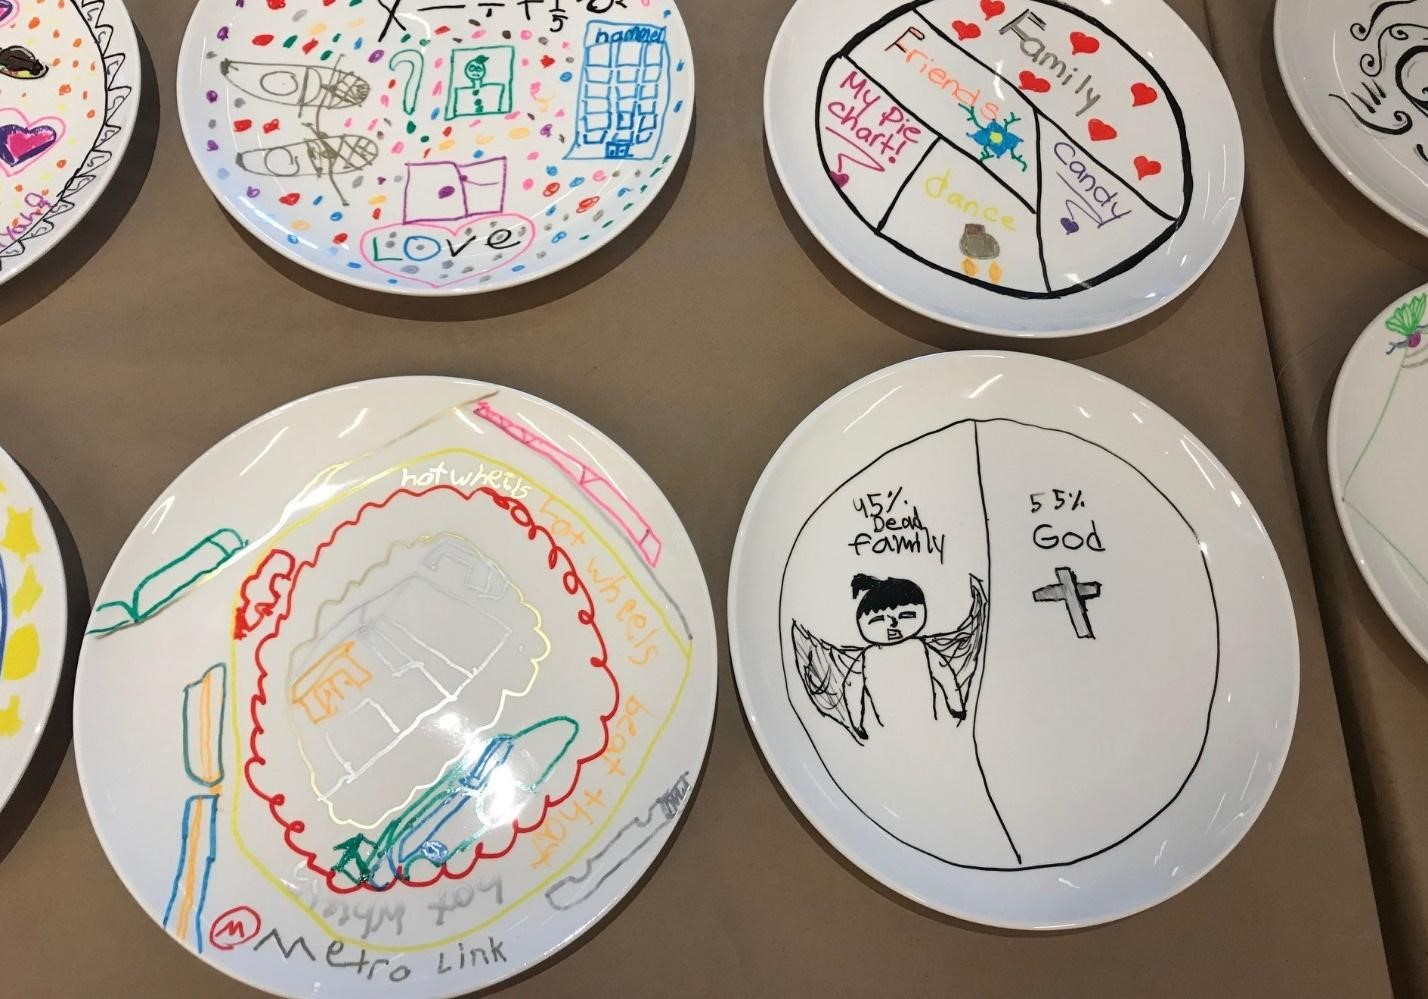 "Among more colorful, elaborately designed plates, the grieving student's is shown: a simple black pie chart that says ""45% dead family"" and ""55% God,"" with illustrations of an angel and a crucifix."